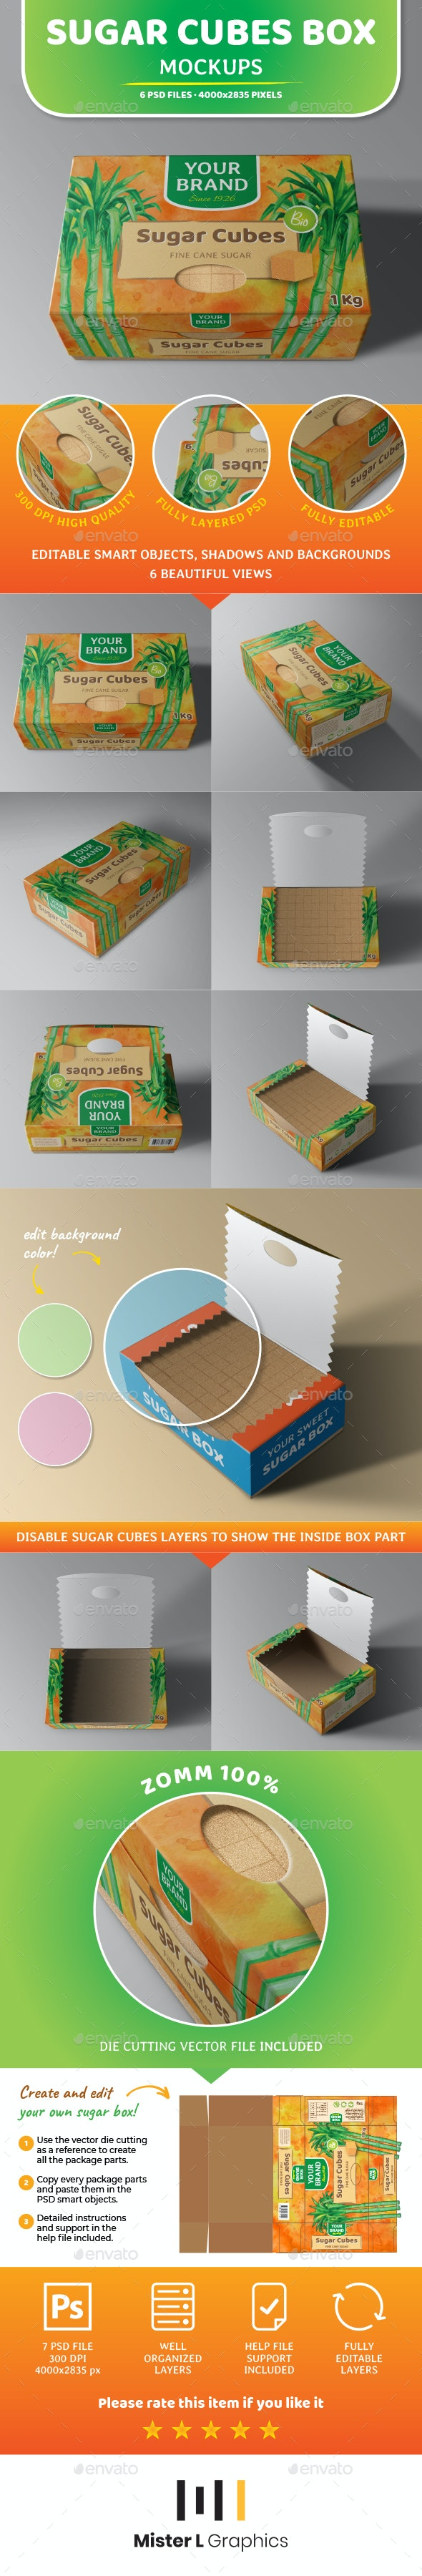 Box Mockup - Food and Drink Packaging